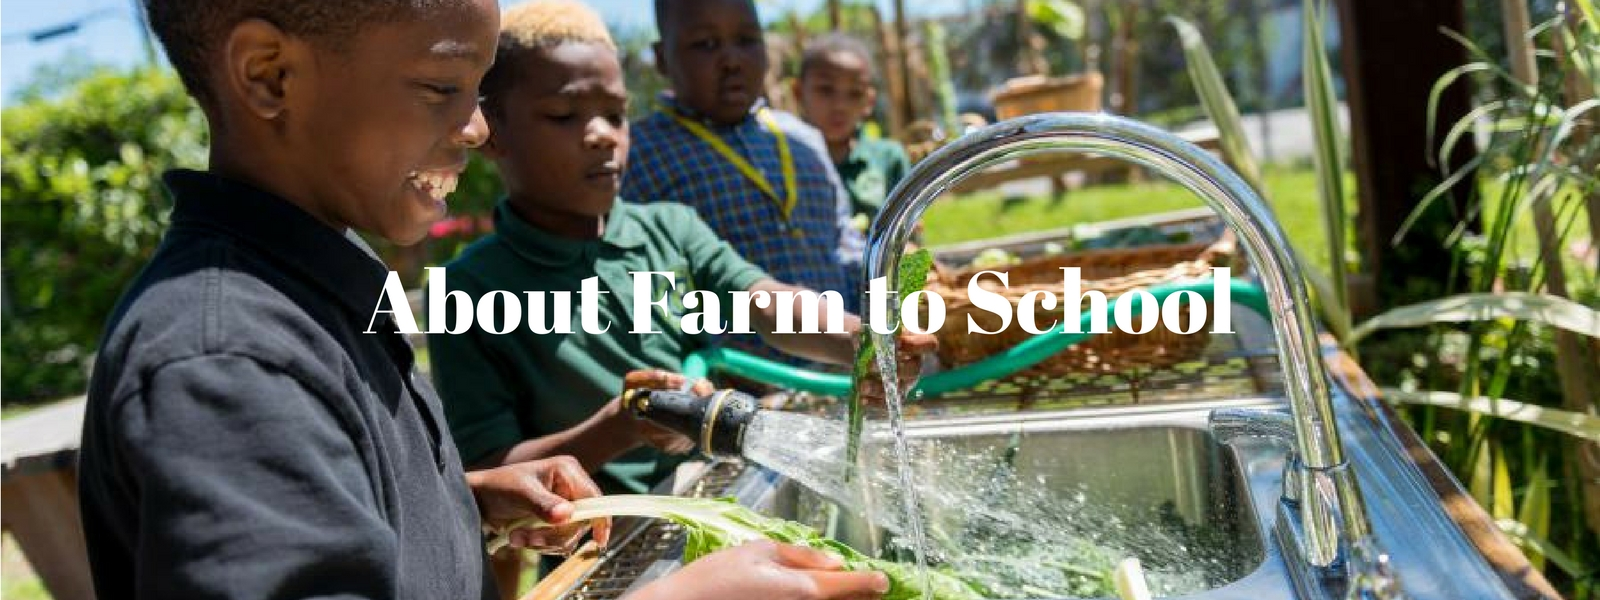 About Farm to School4.jpg thumbnail